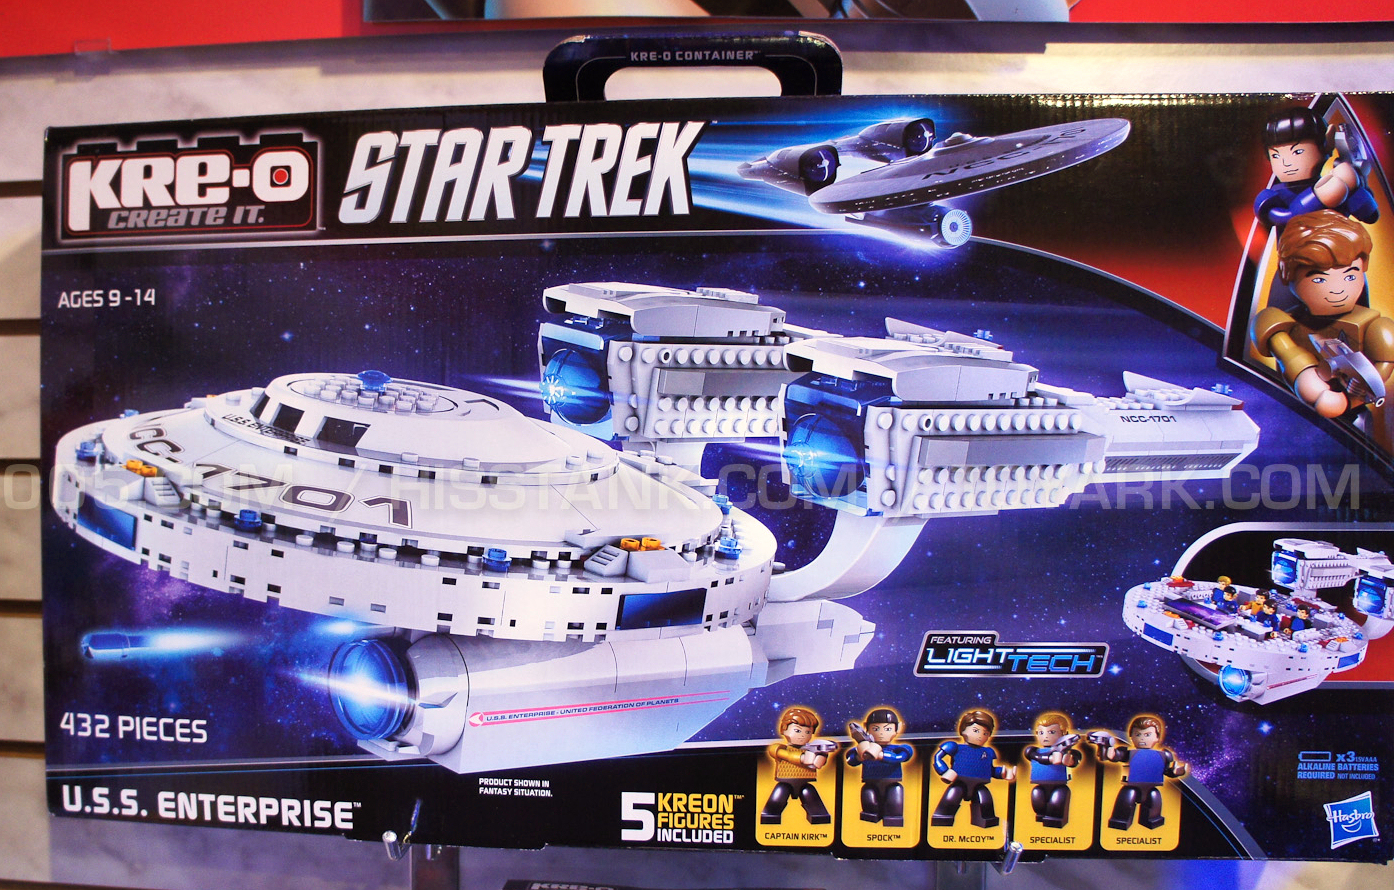 USS Stargazer Model Kit http://www.thetrekcollective.com/2013/02/star-trek-kre-o-at-toy-fair.html